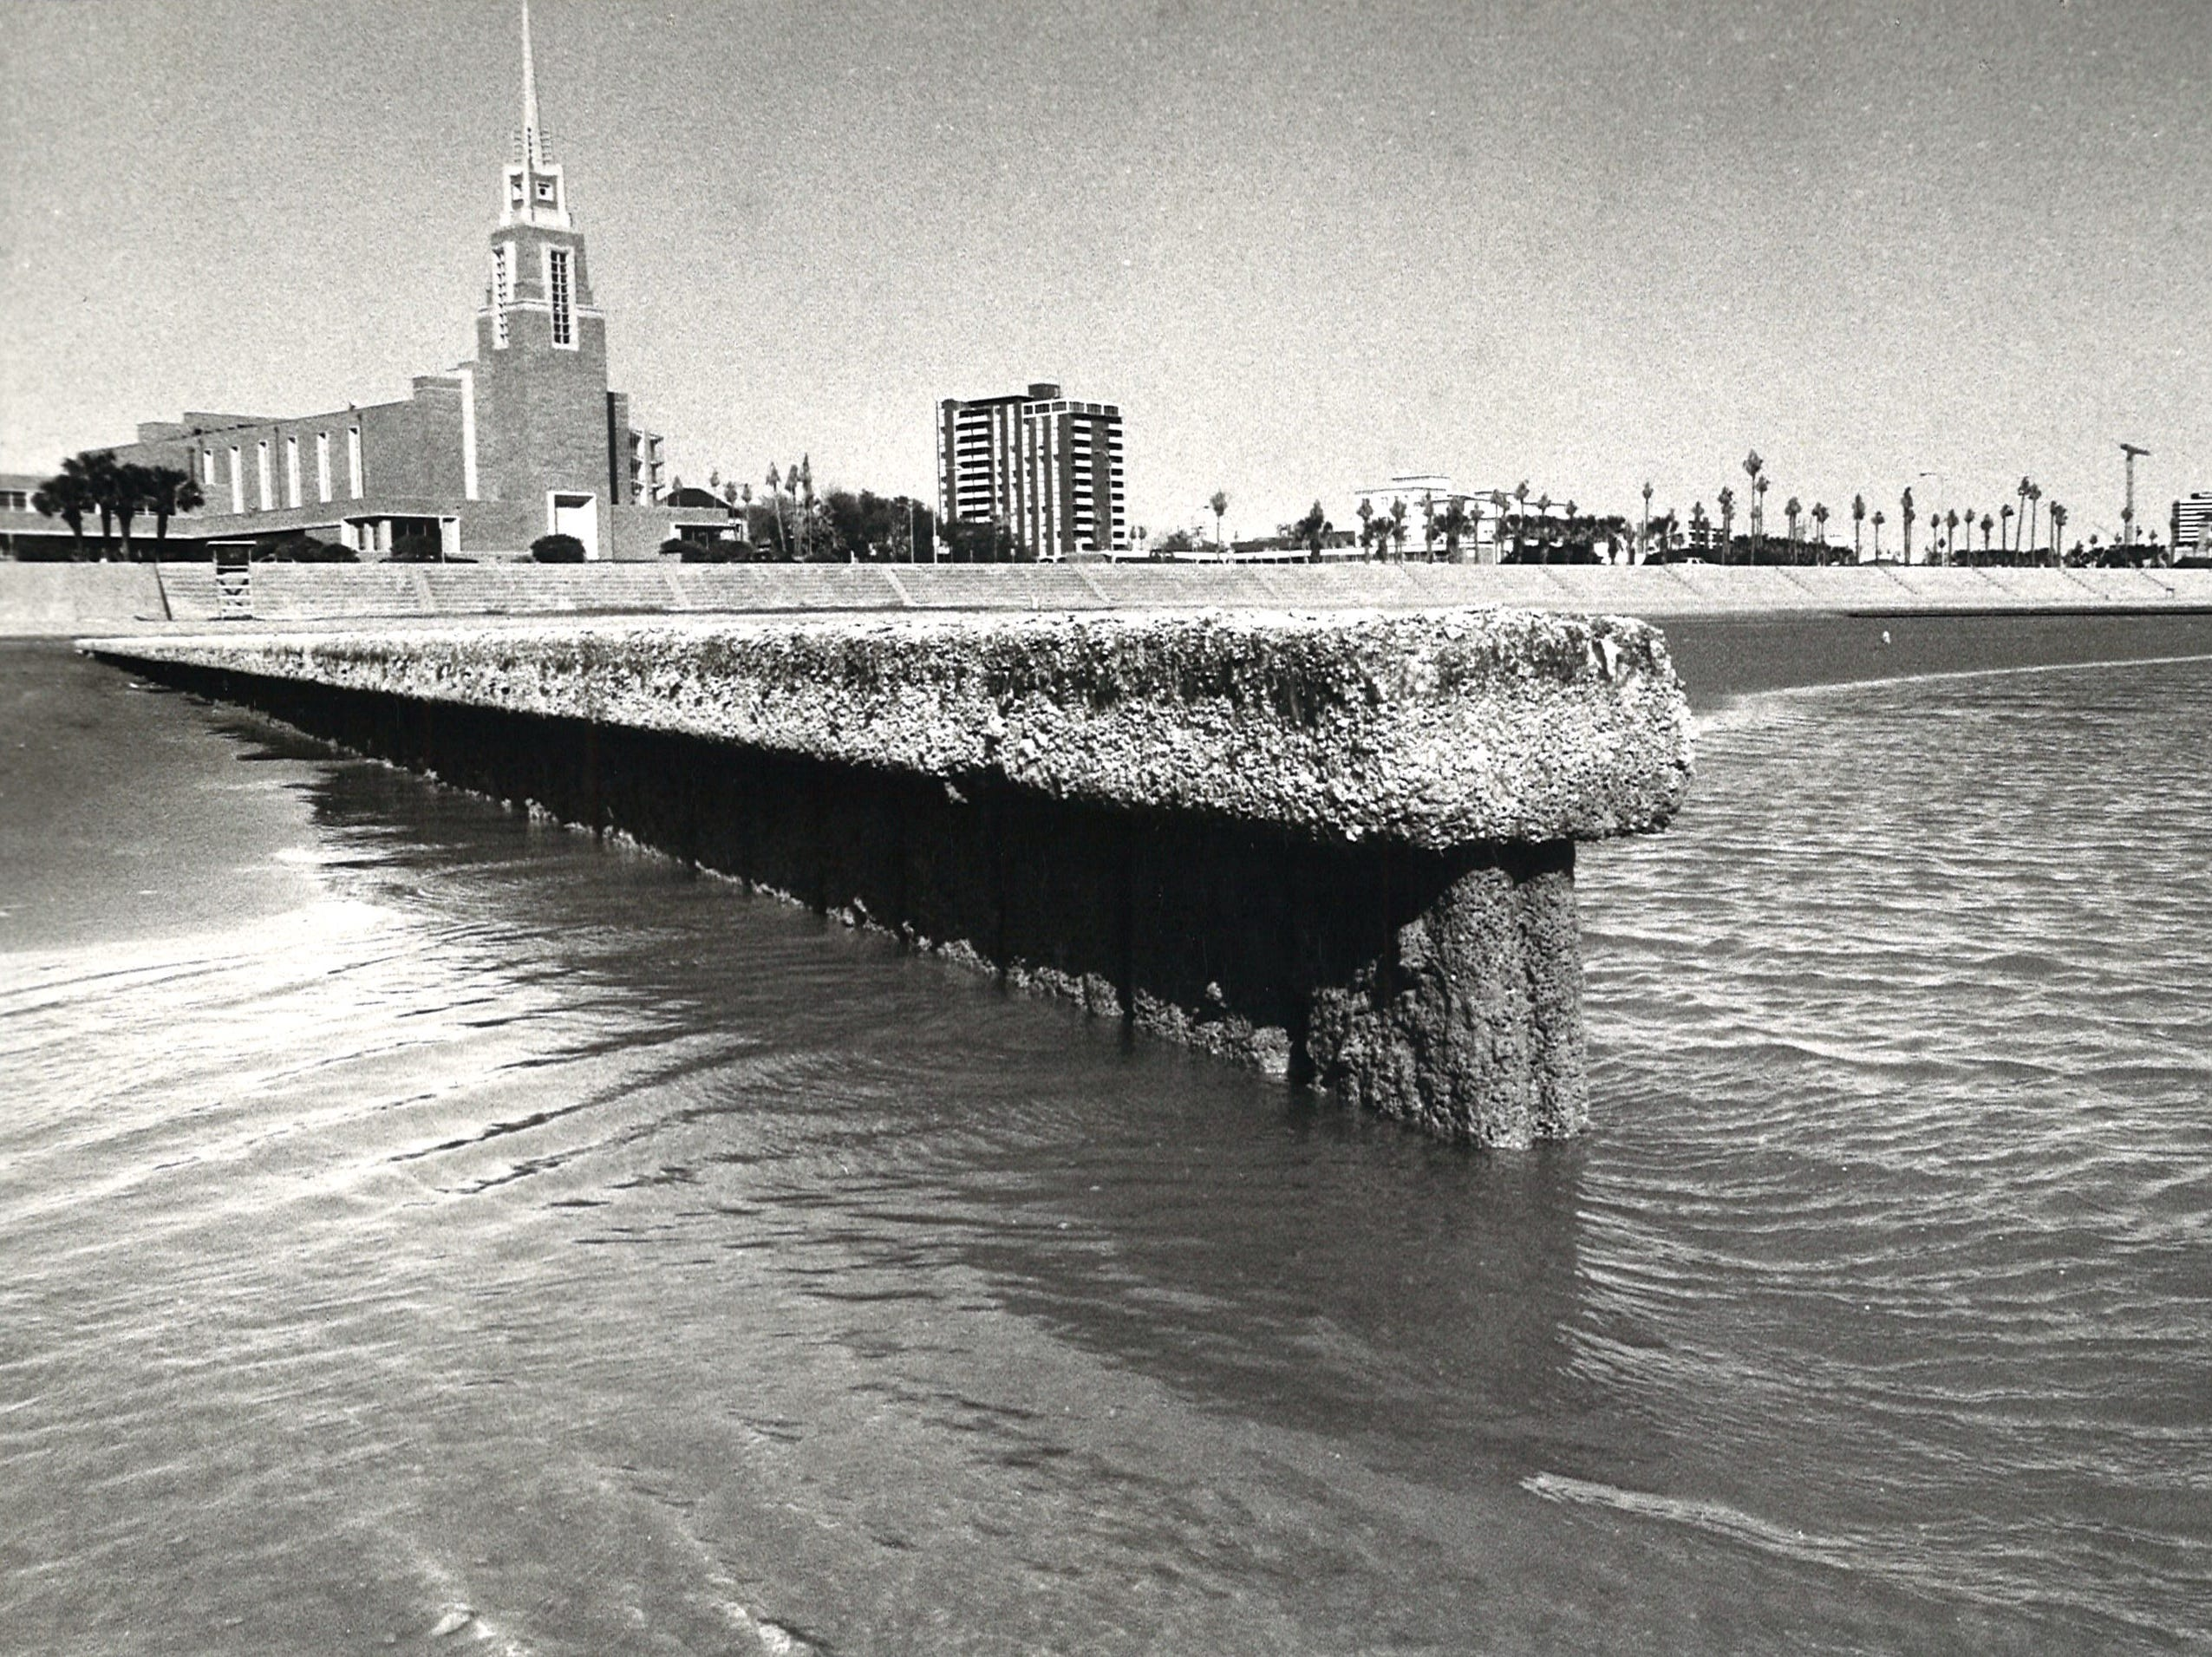 Low tide at McGee Beach in downtown Corpus Christi exposed the ends of the short breakwaters Feb. 28, 1984.